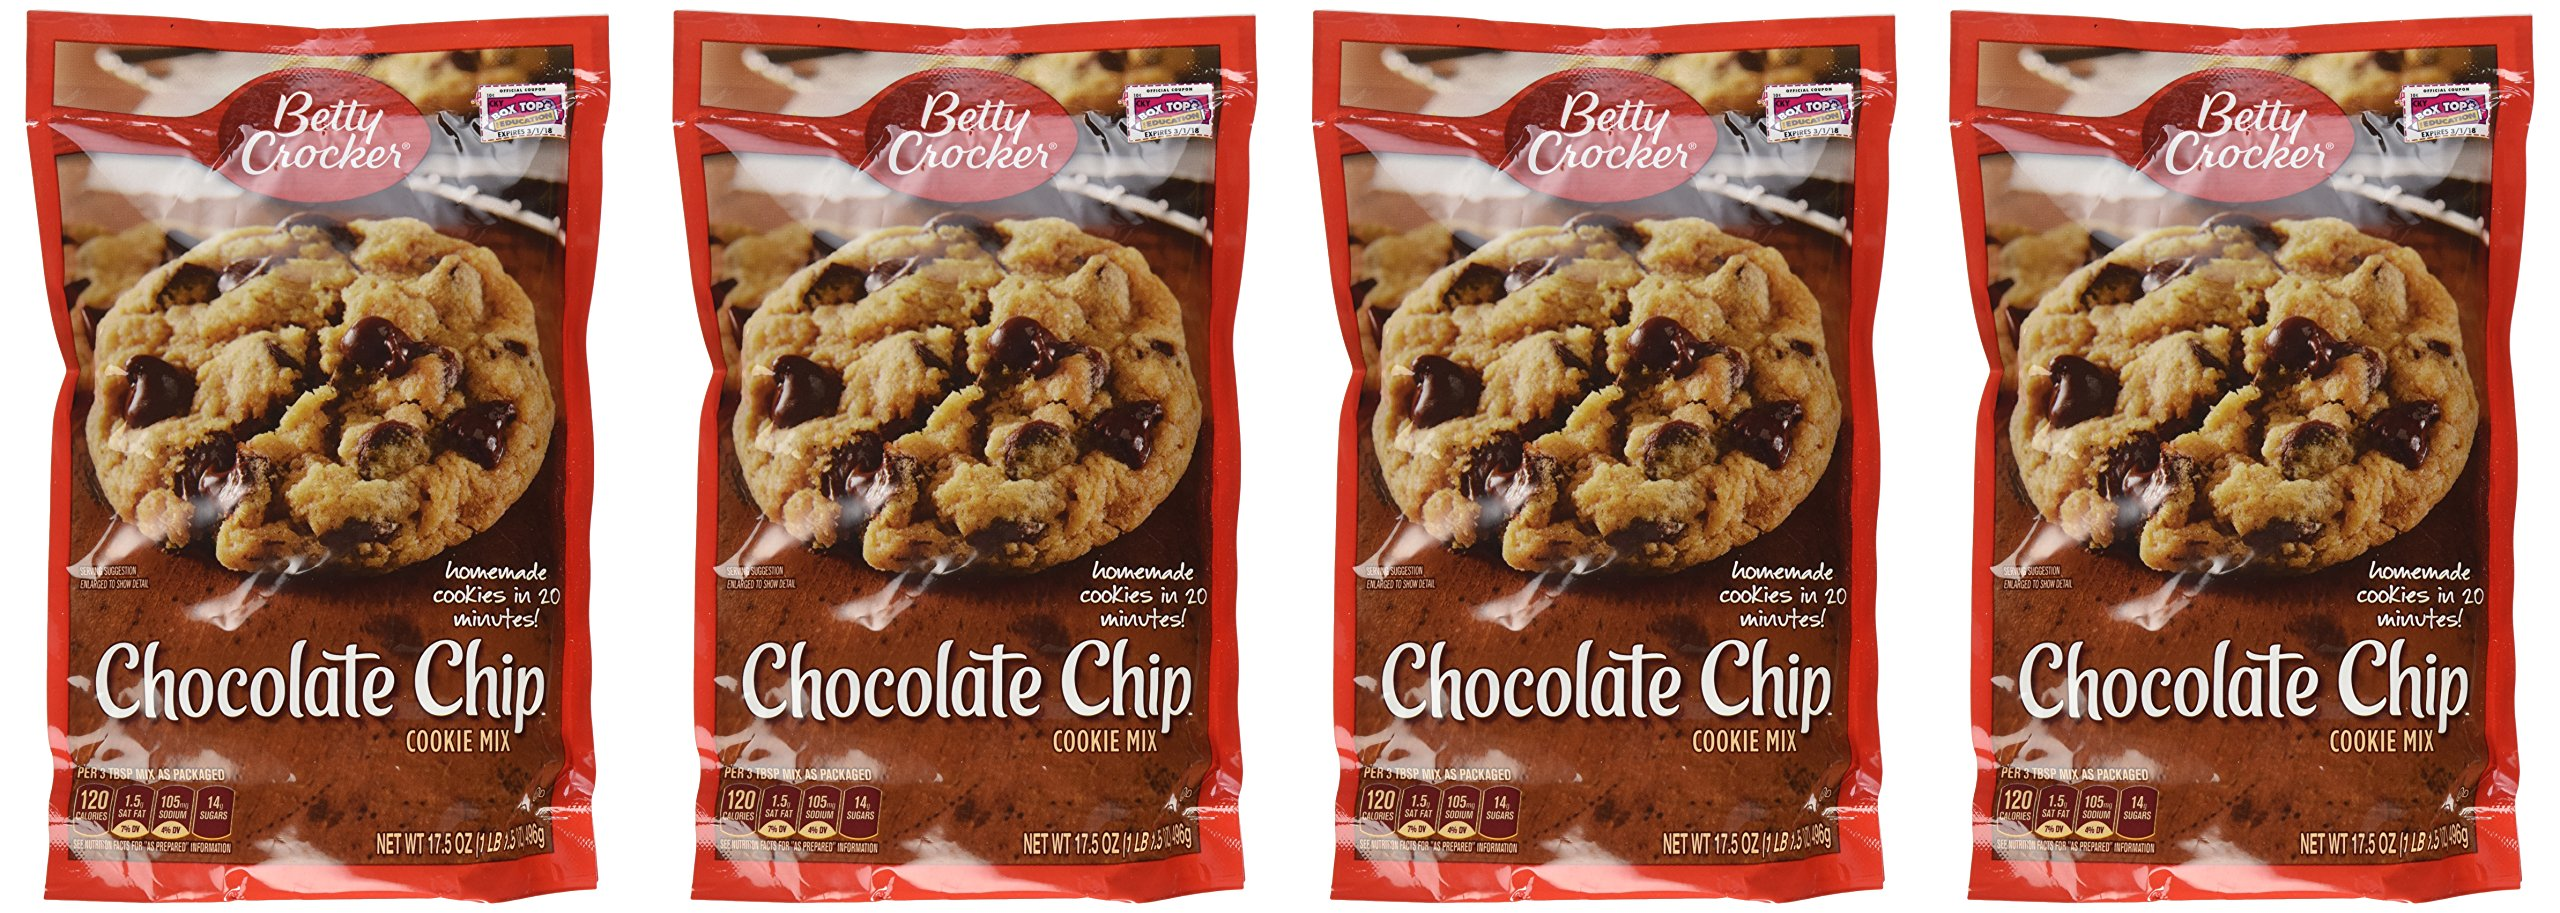 Betty Crocker, Cookie Mix, Chocolate Chip, 17.5oz Pouch (Pack of 4)